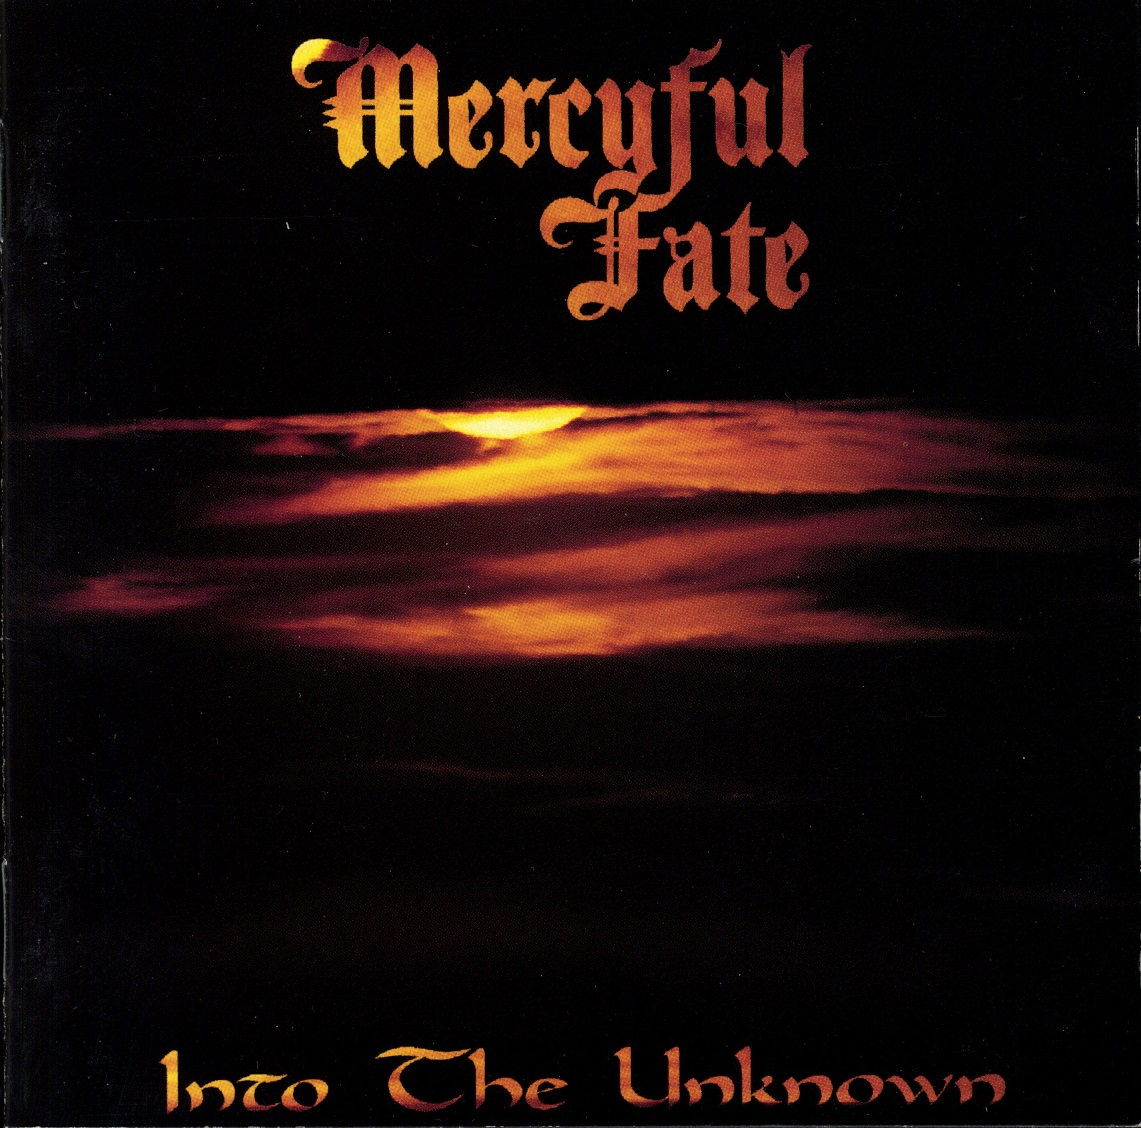 Mercyful Fate - Into The Unknown - 1996